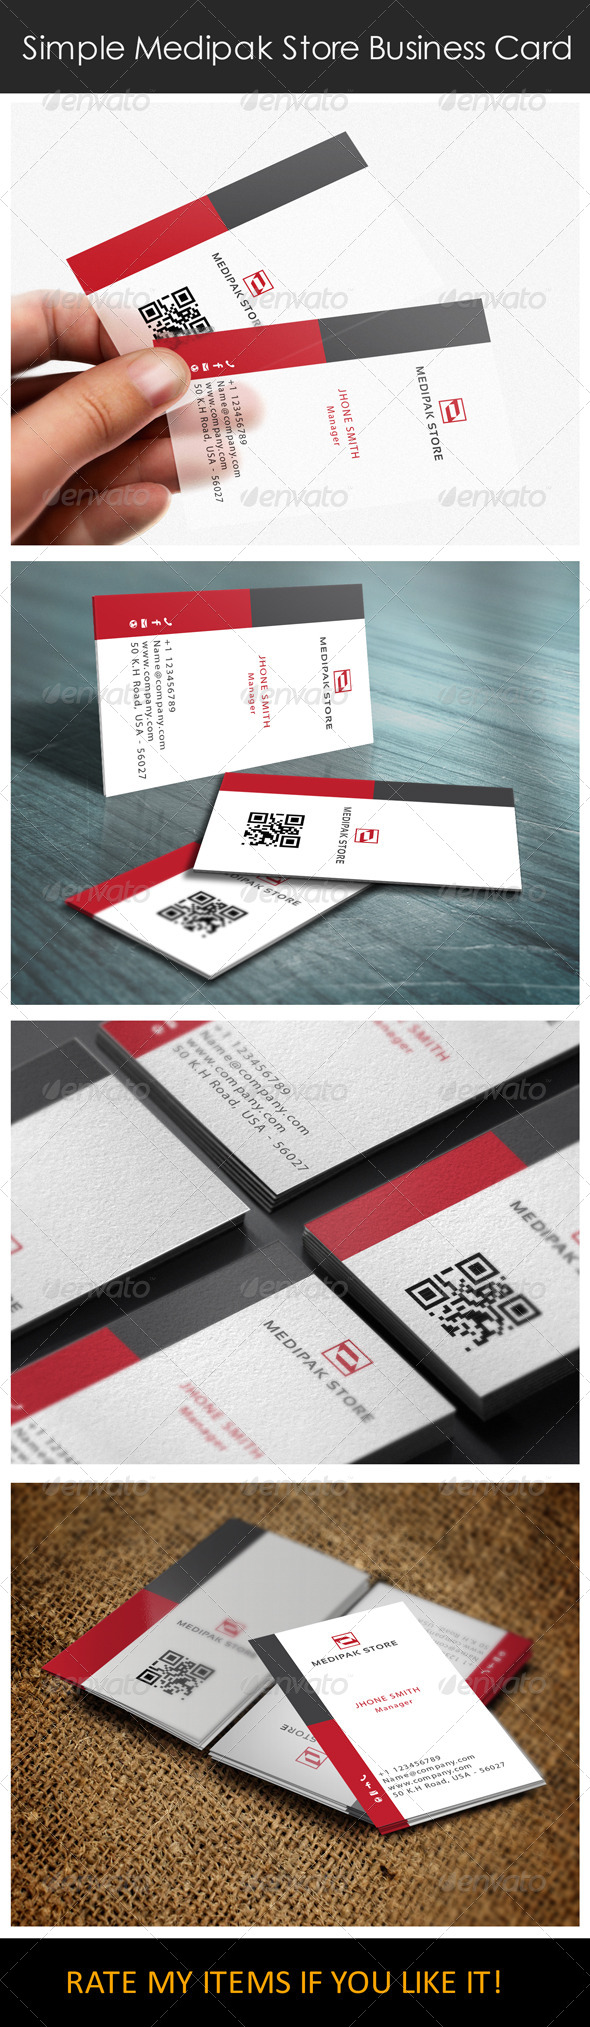 GraphicRiver Simple Medipak Store Logo and Business Card 6421168